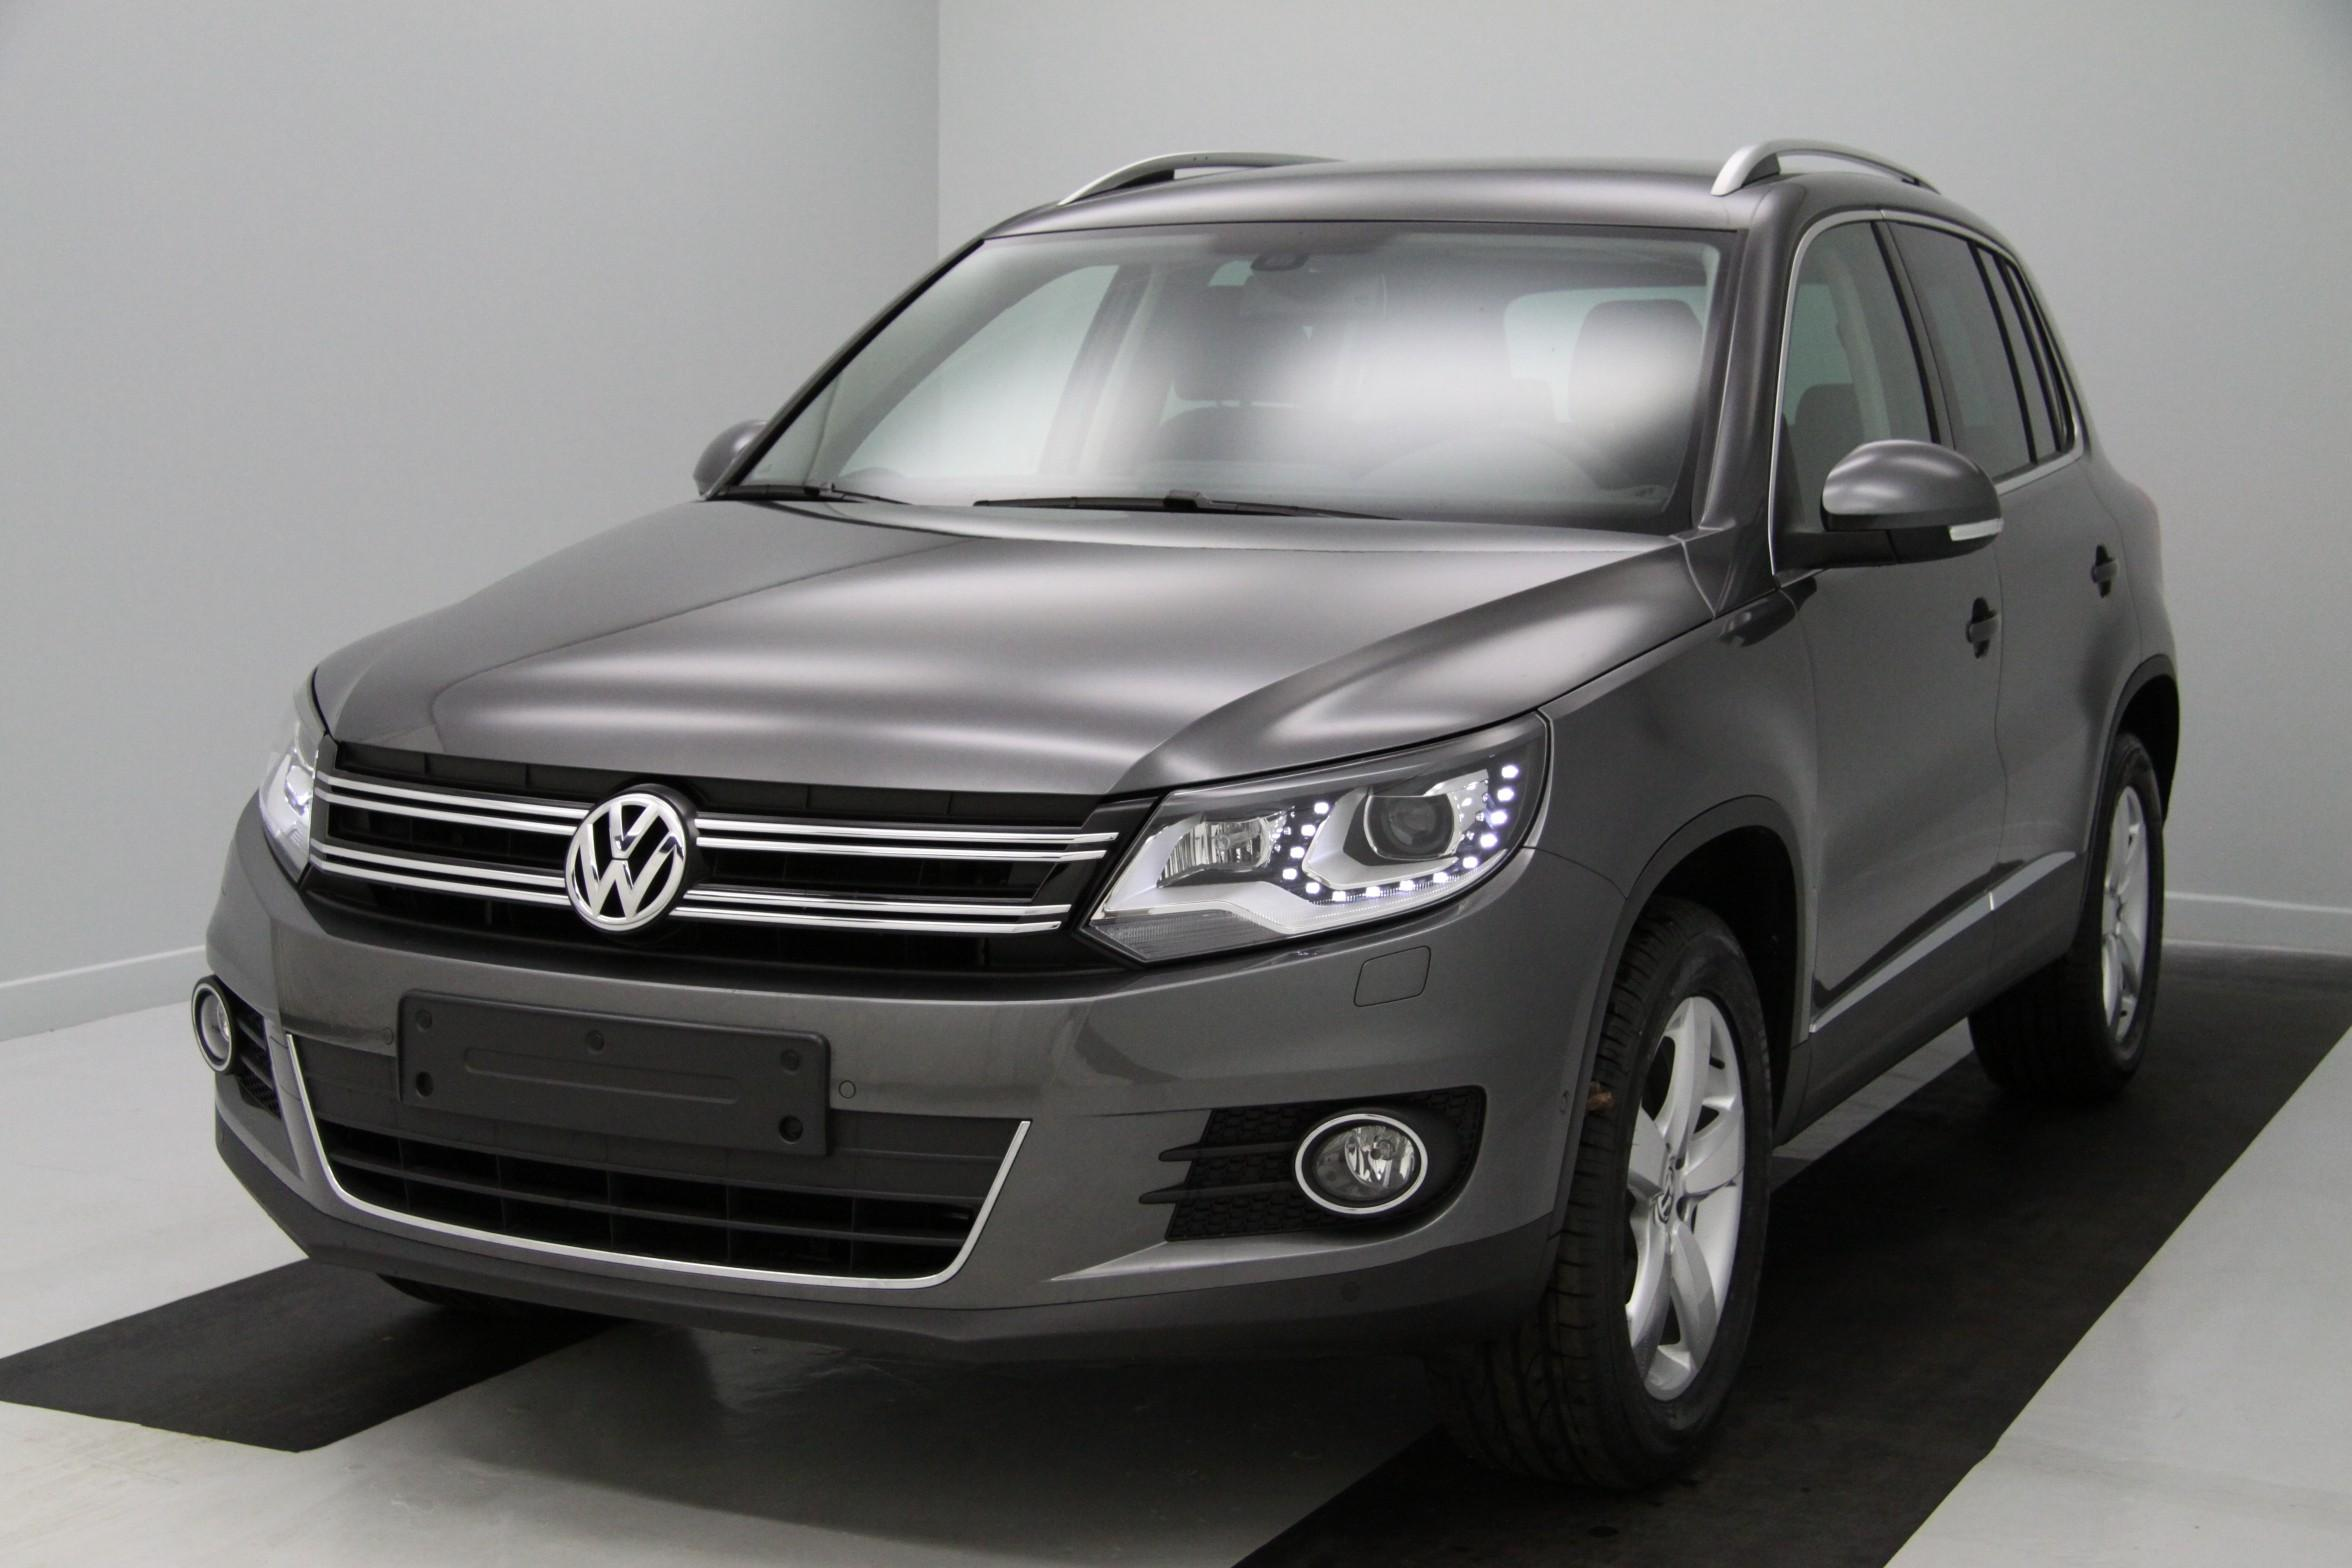 volkswagen tiguan neuve achat volkswagen tiguan neuve auto design tech. Black Bedroom Furniture Sets. Home Design Ideas